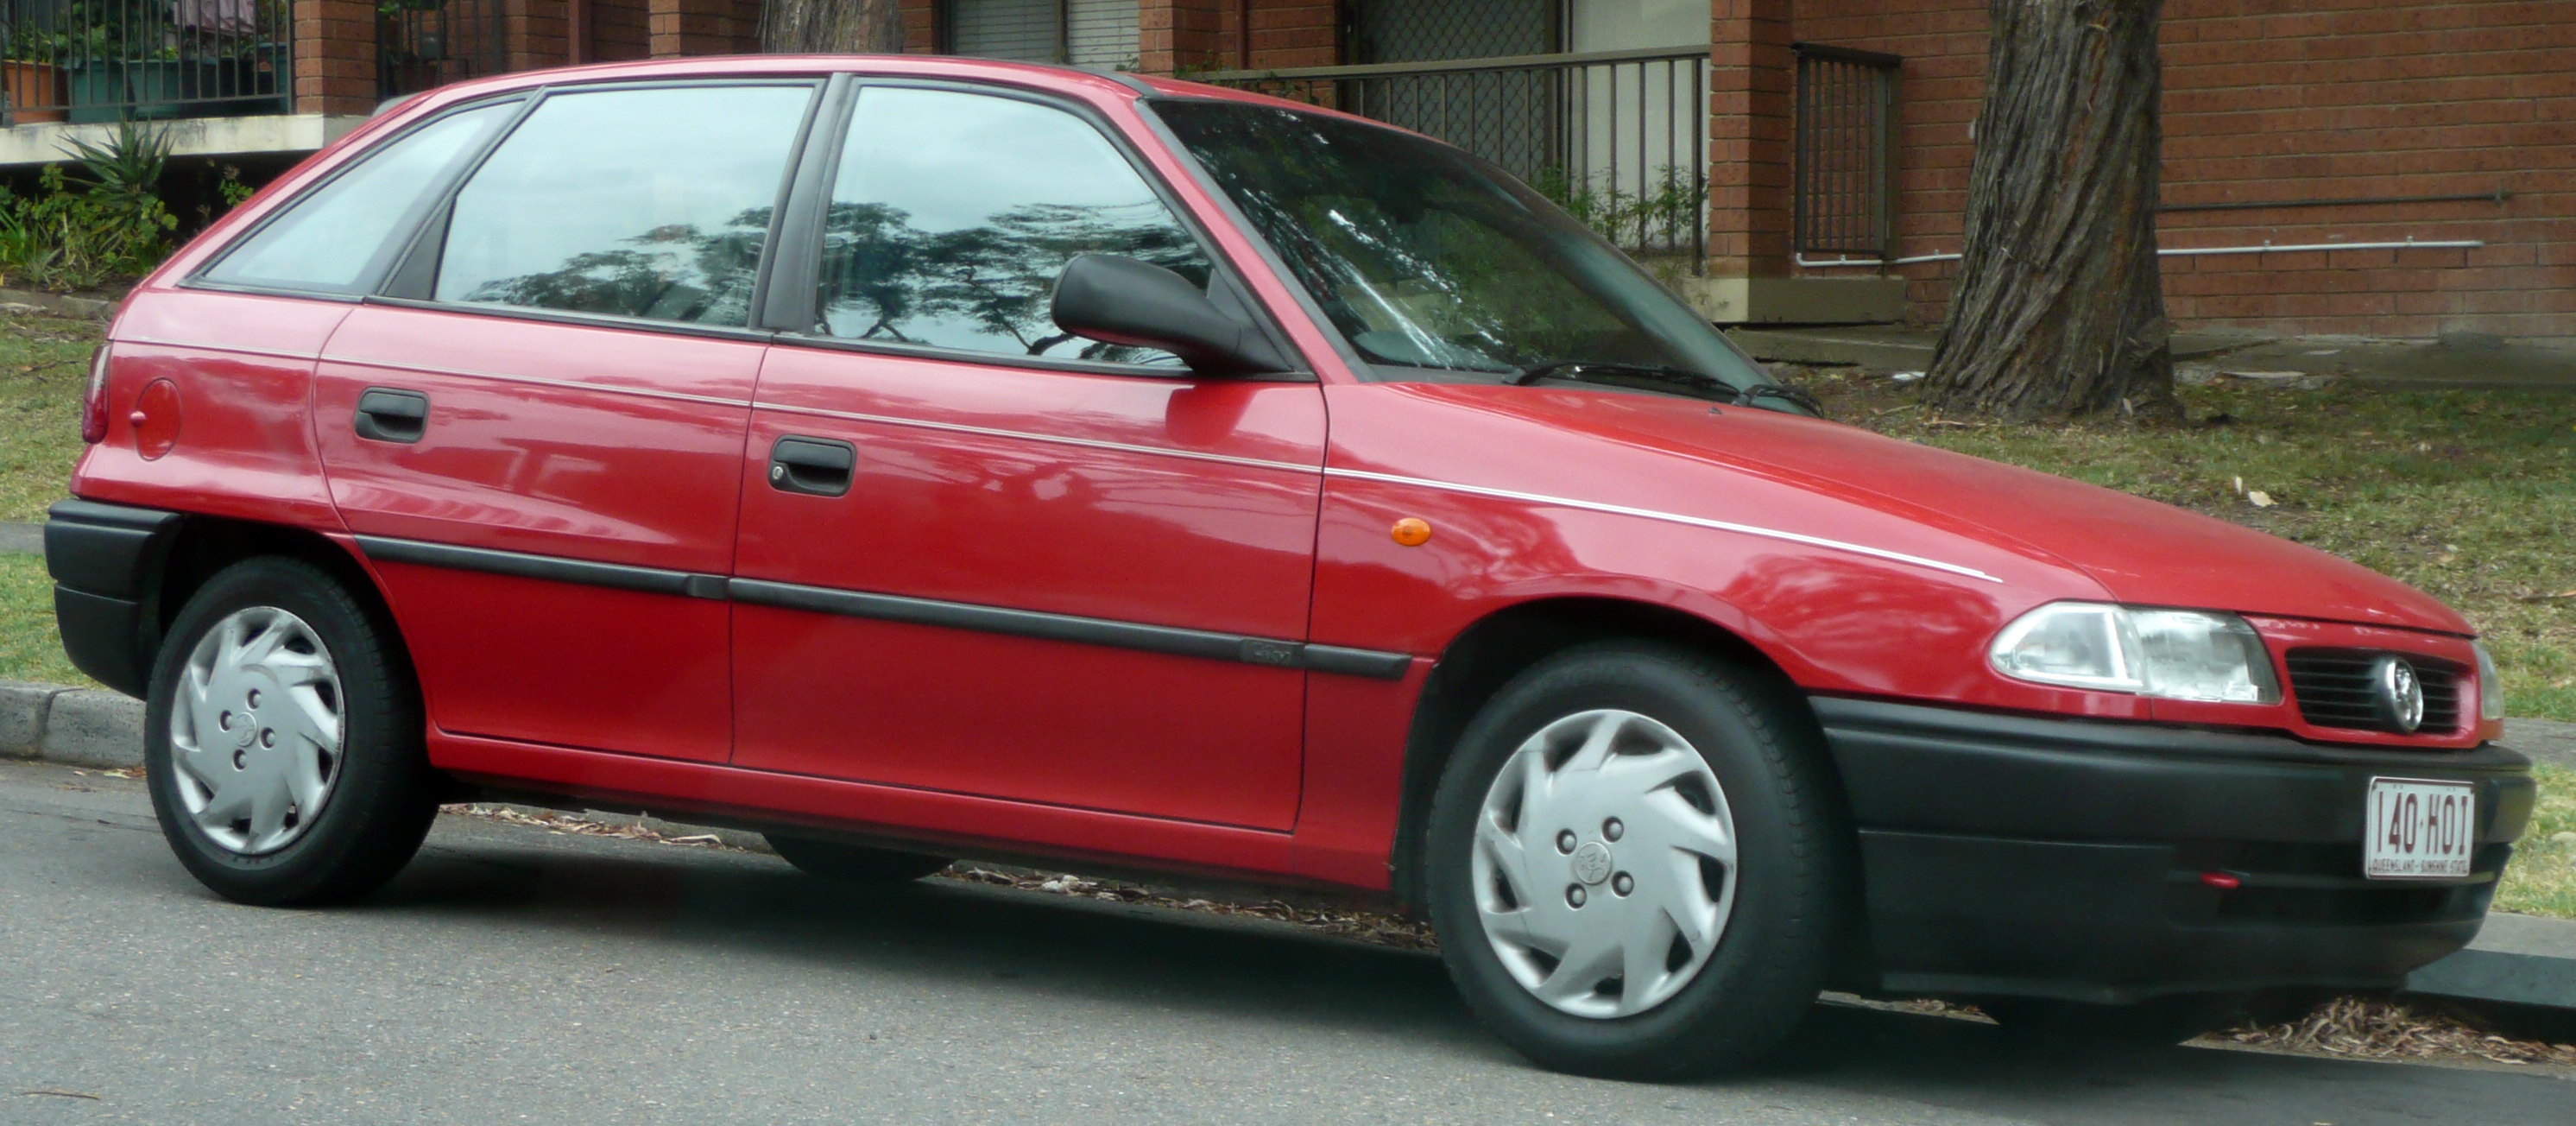 1996 opel astra f cc pictures information and specs auto. Black Bedroom Furniture Sets. Home Design Ideas